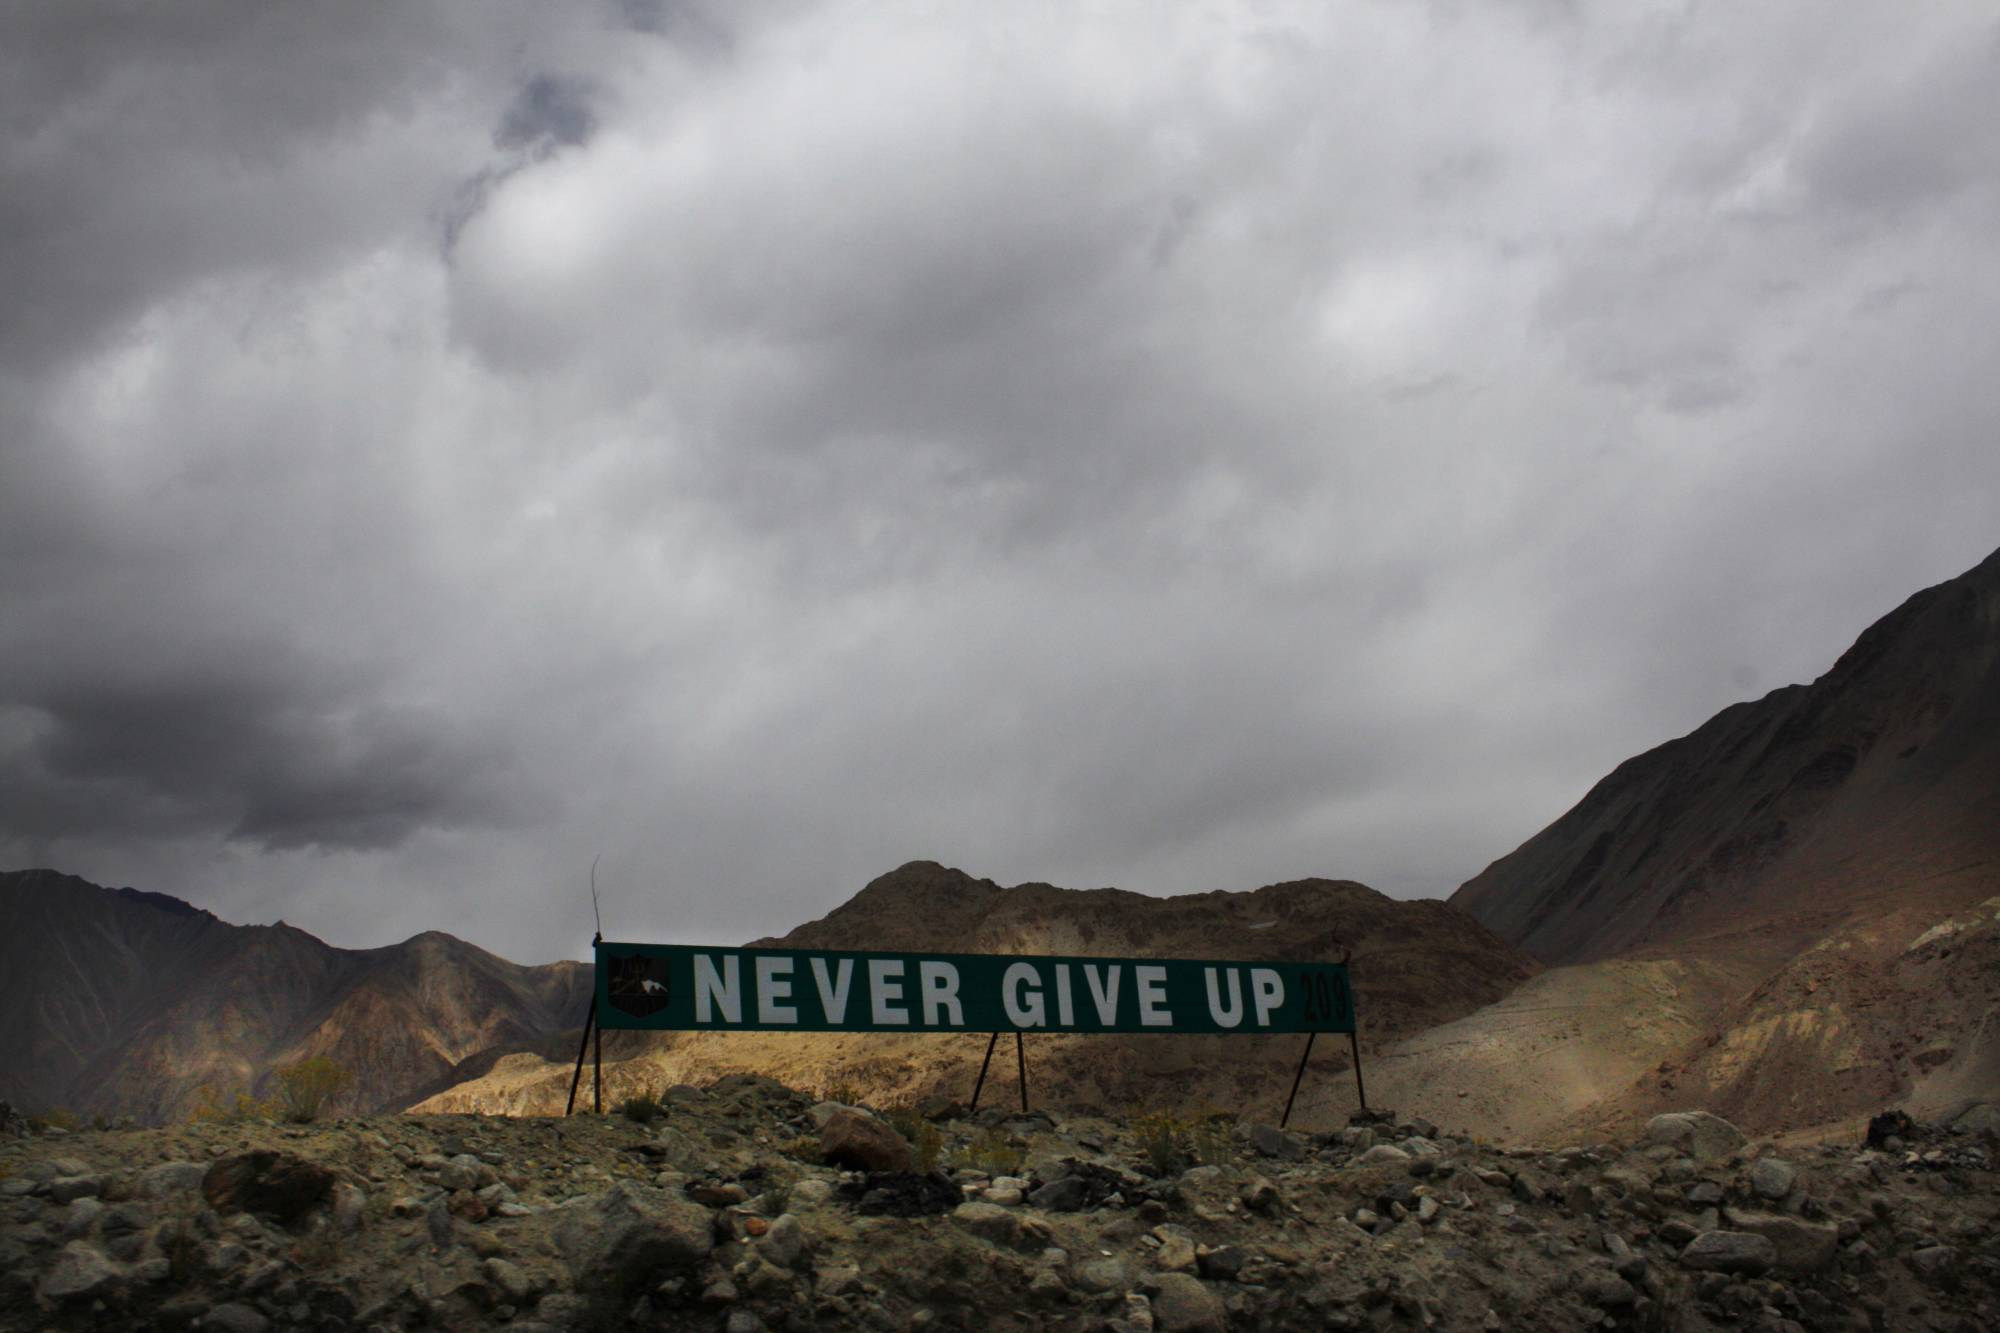 A banner erected by the Indian Army stands near Pangong Tso lake near the India-China border in India's Ladakh area. | AP